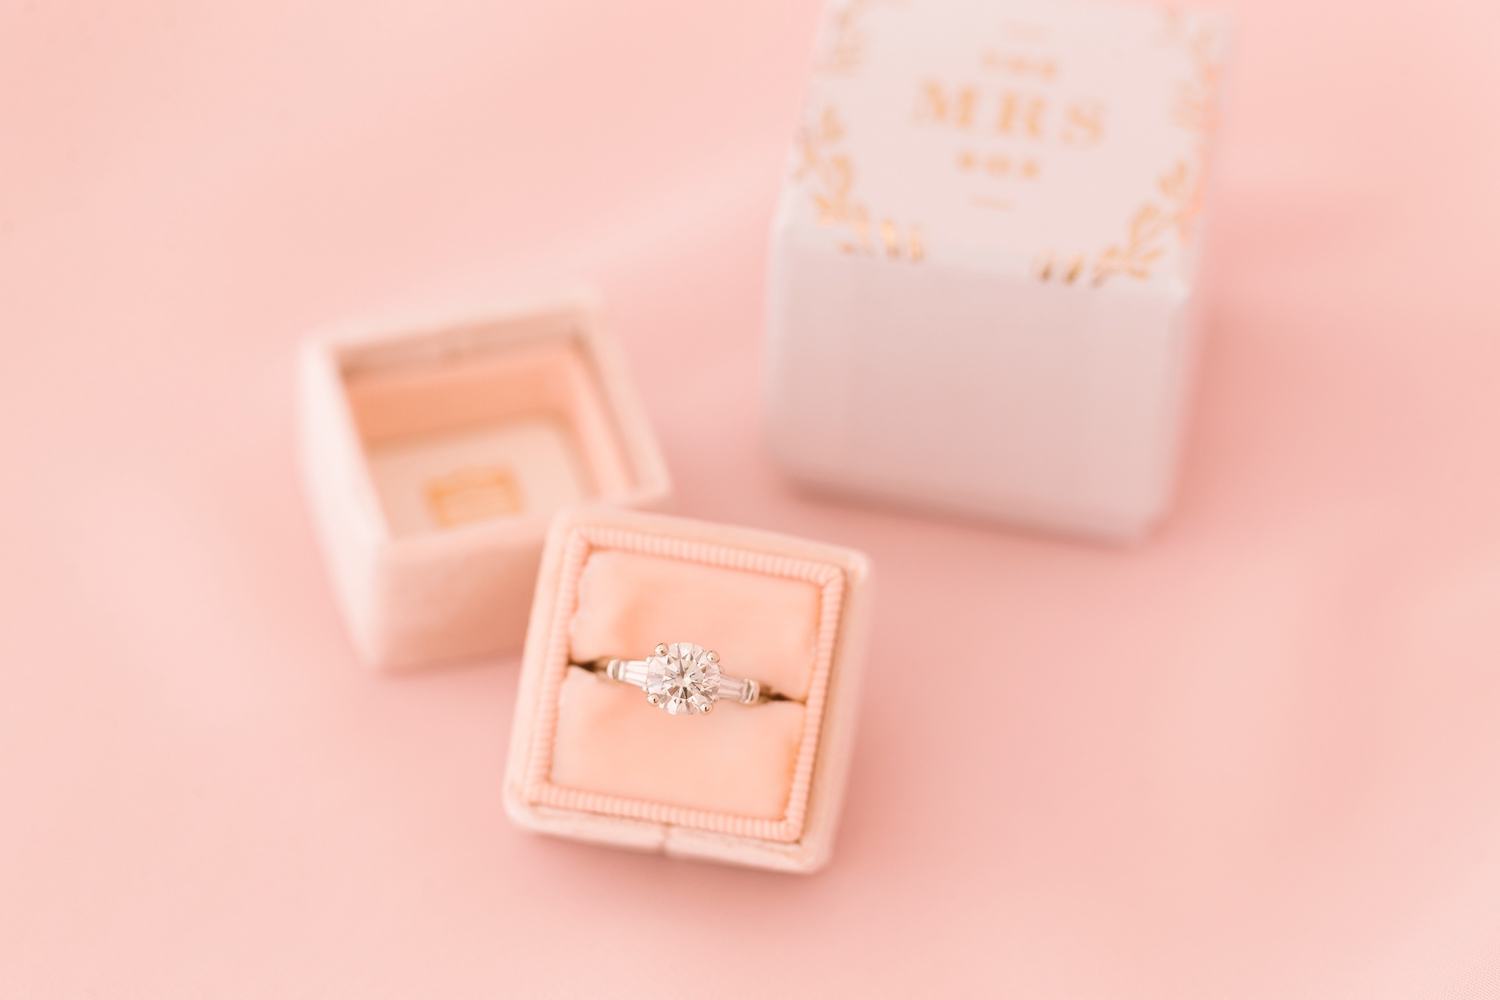 round diamond engagement ring with baguette side stones displayed in blush velvet mrs. box